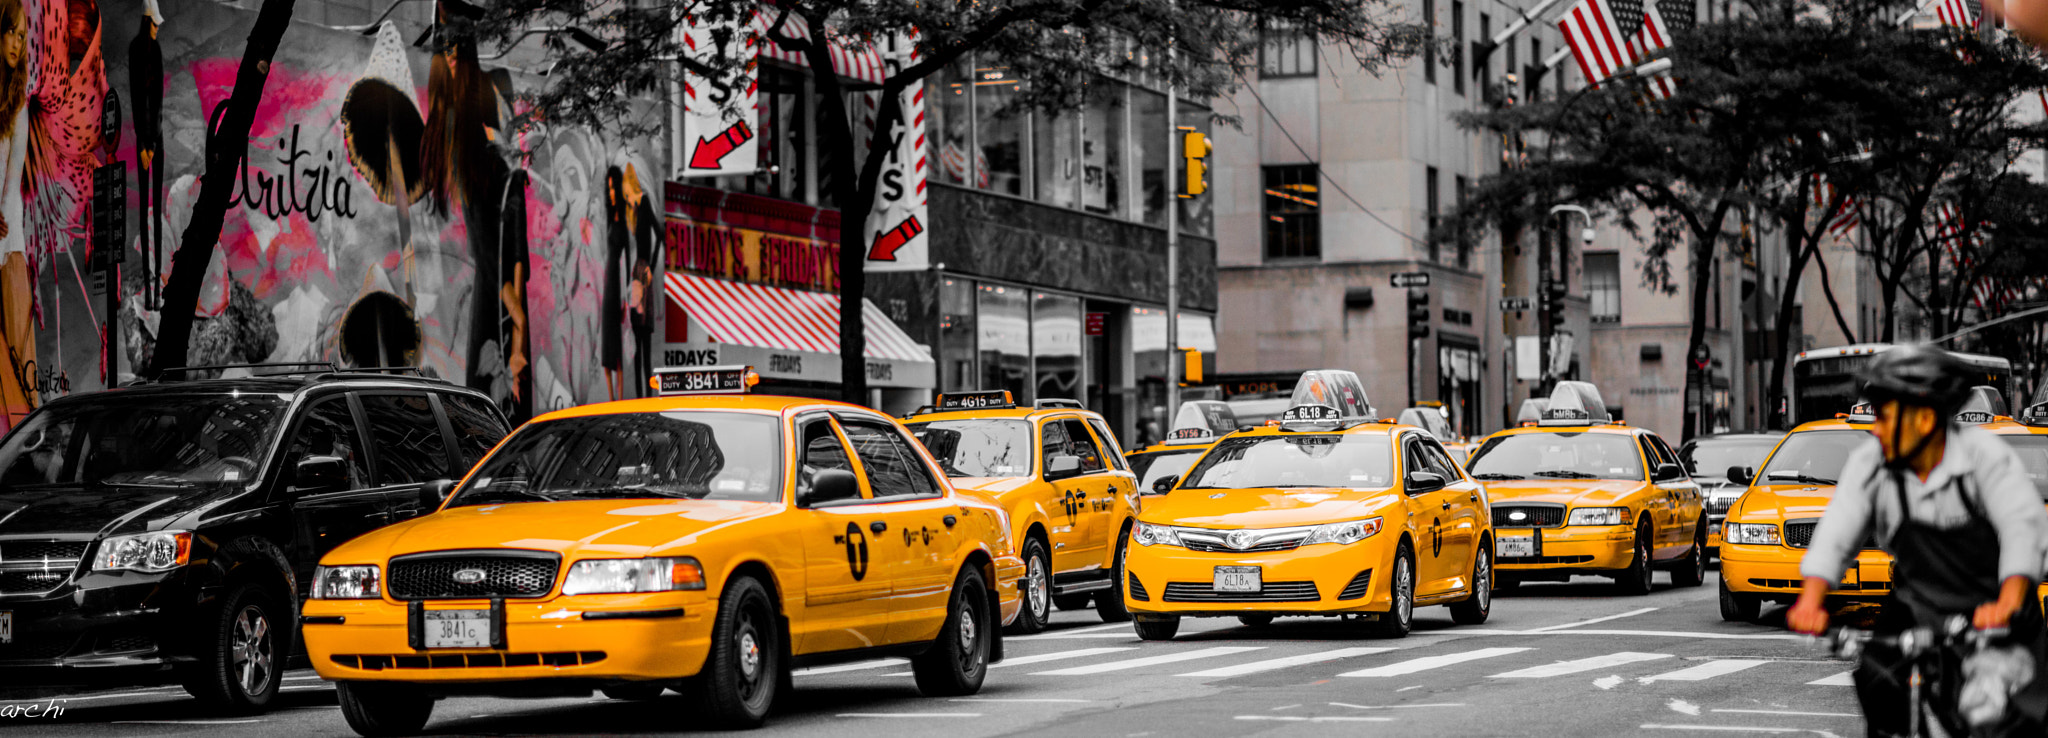 Photograph NYC Taxi by Archana Patchirajan on 500px